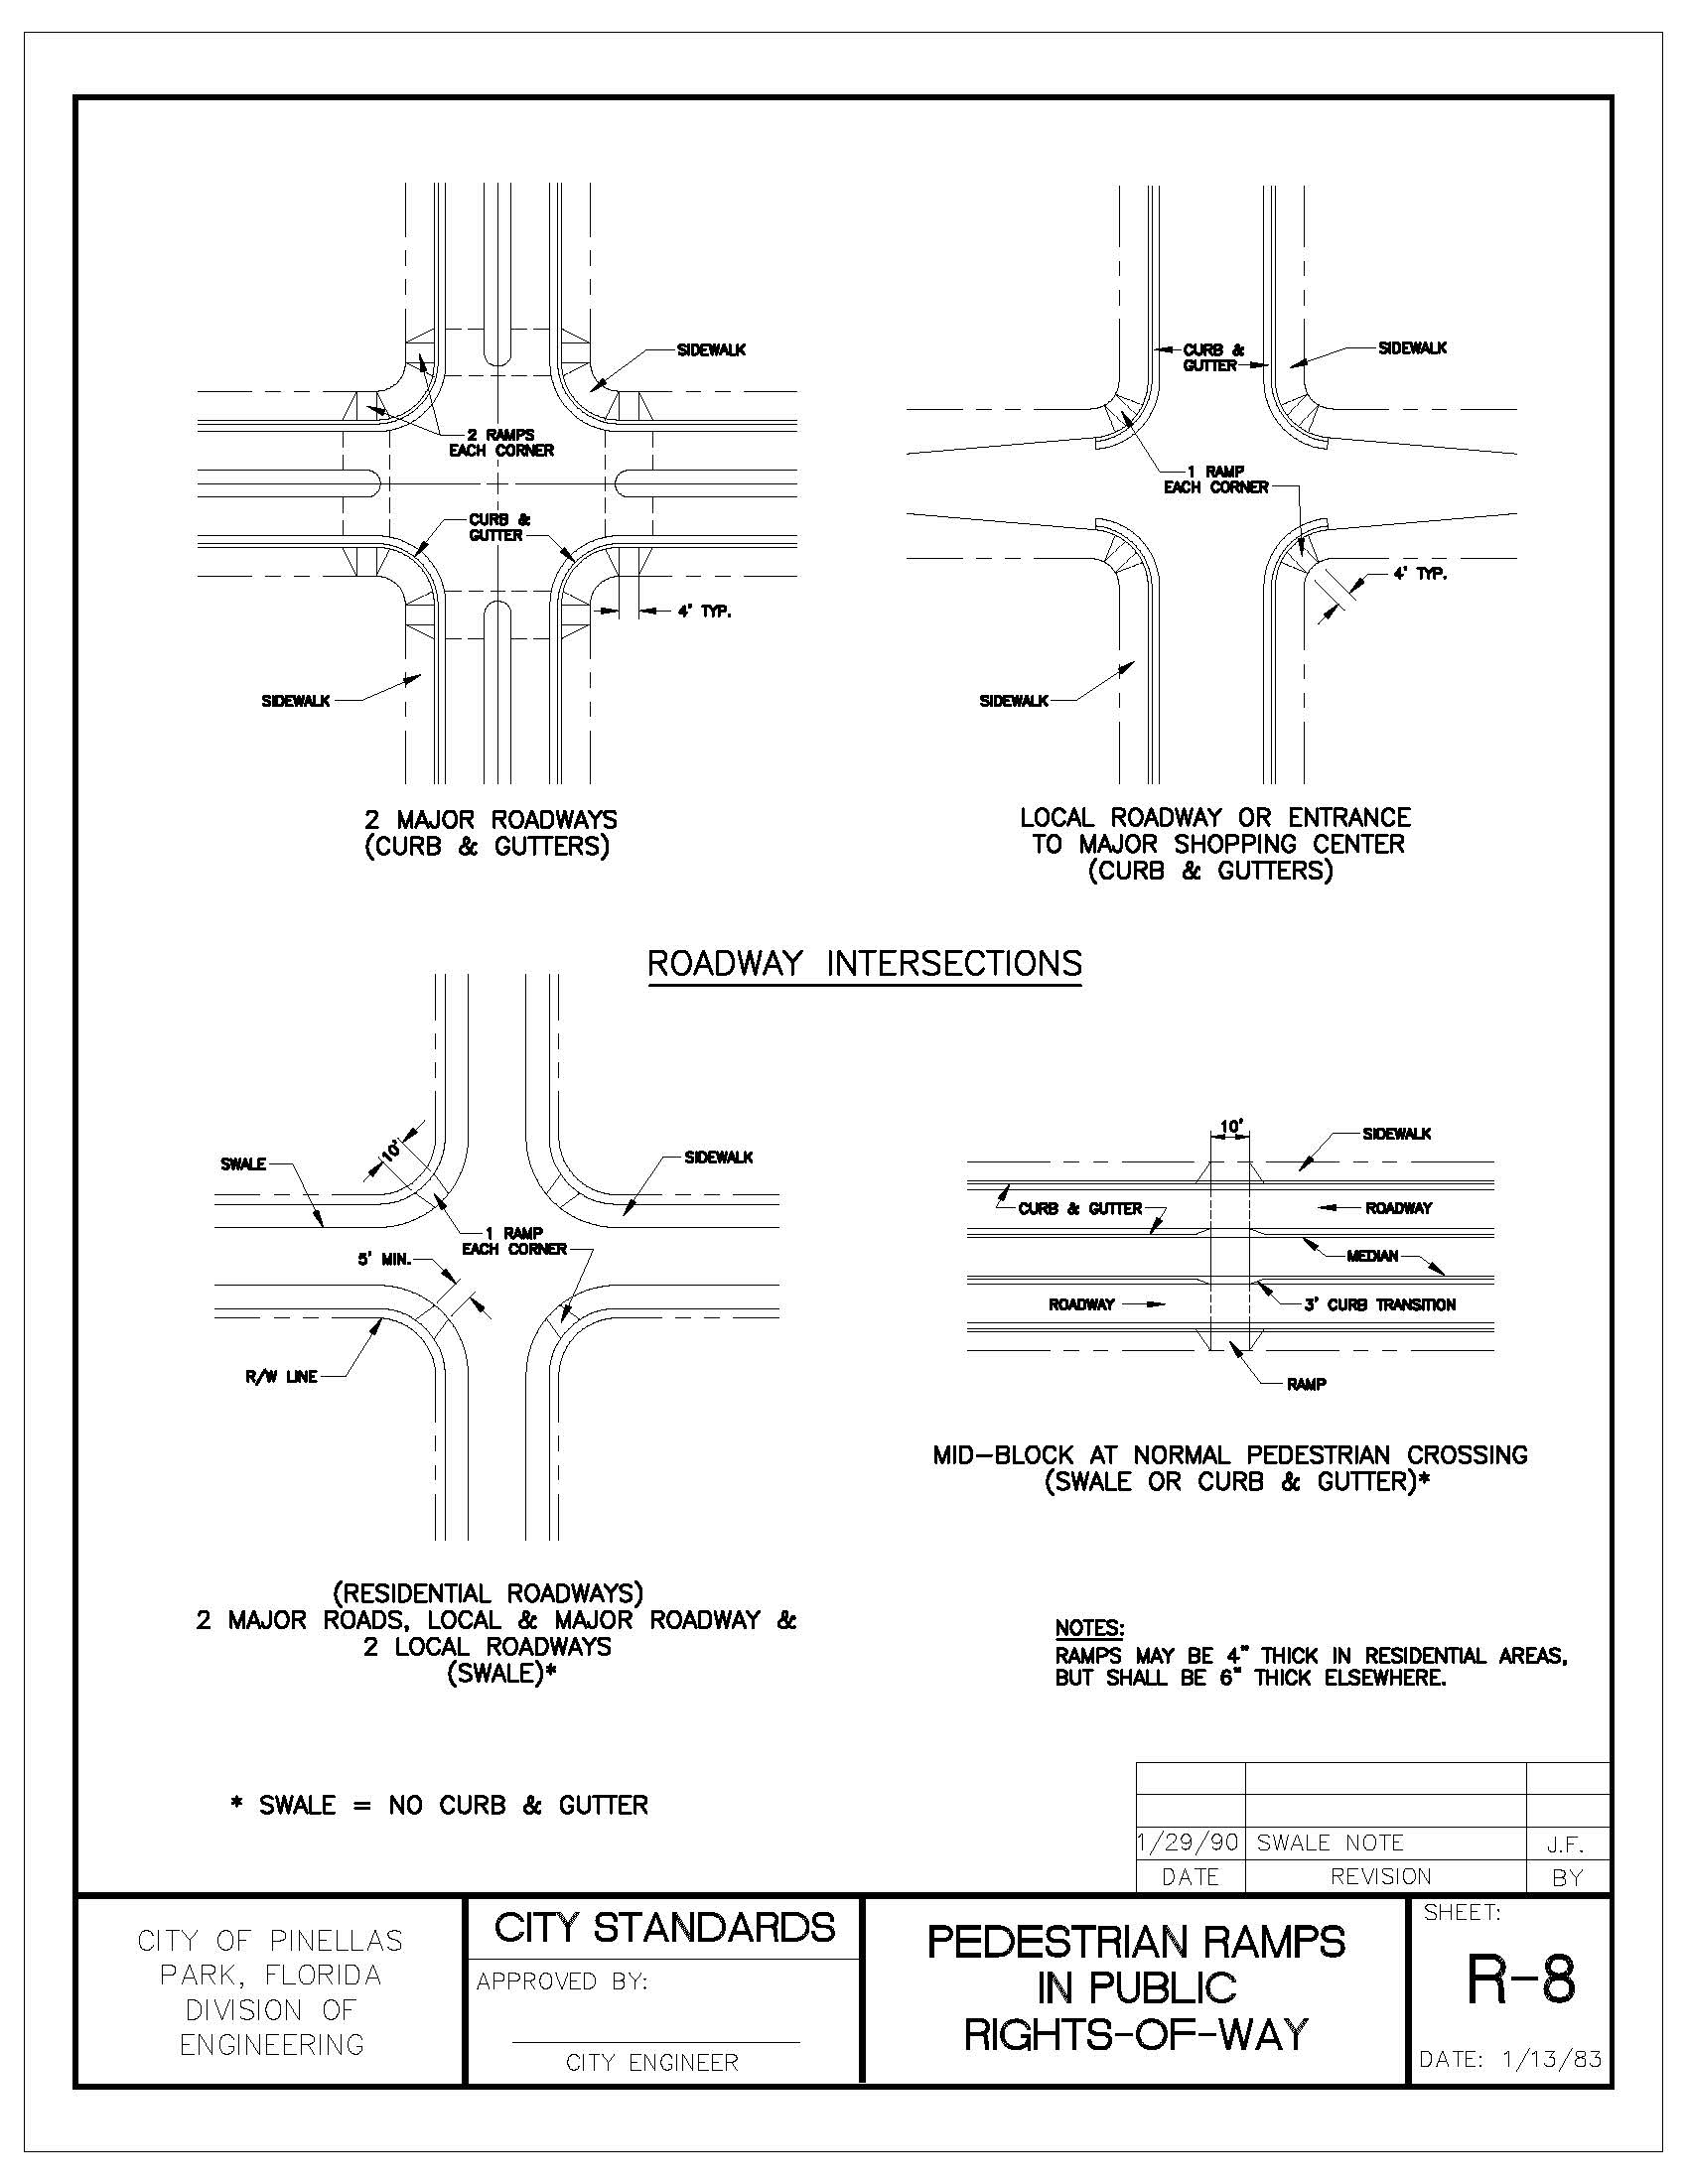 Engineering Manual v5_201908121127291138_Page_045 pedestrian ramps in public rights of way